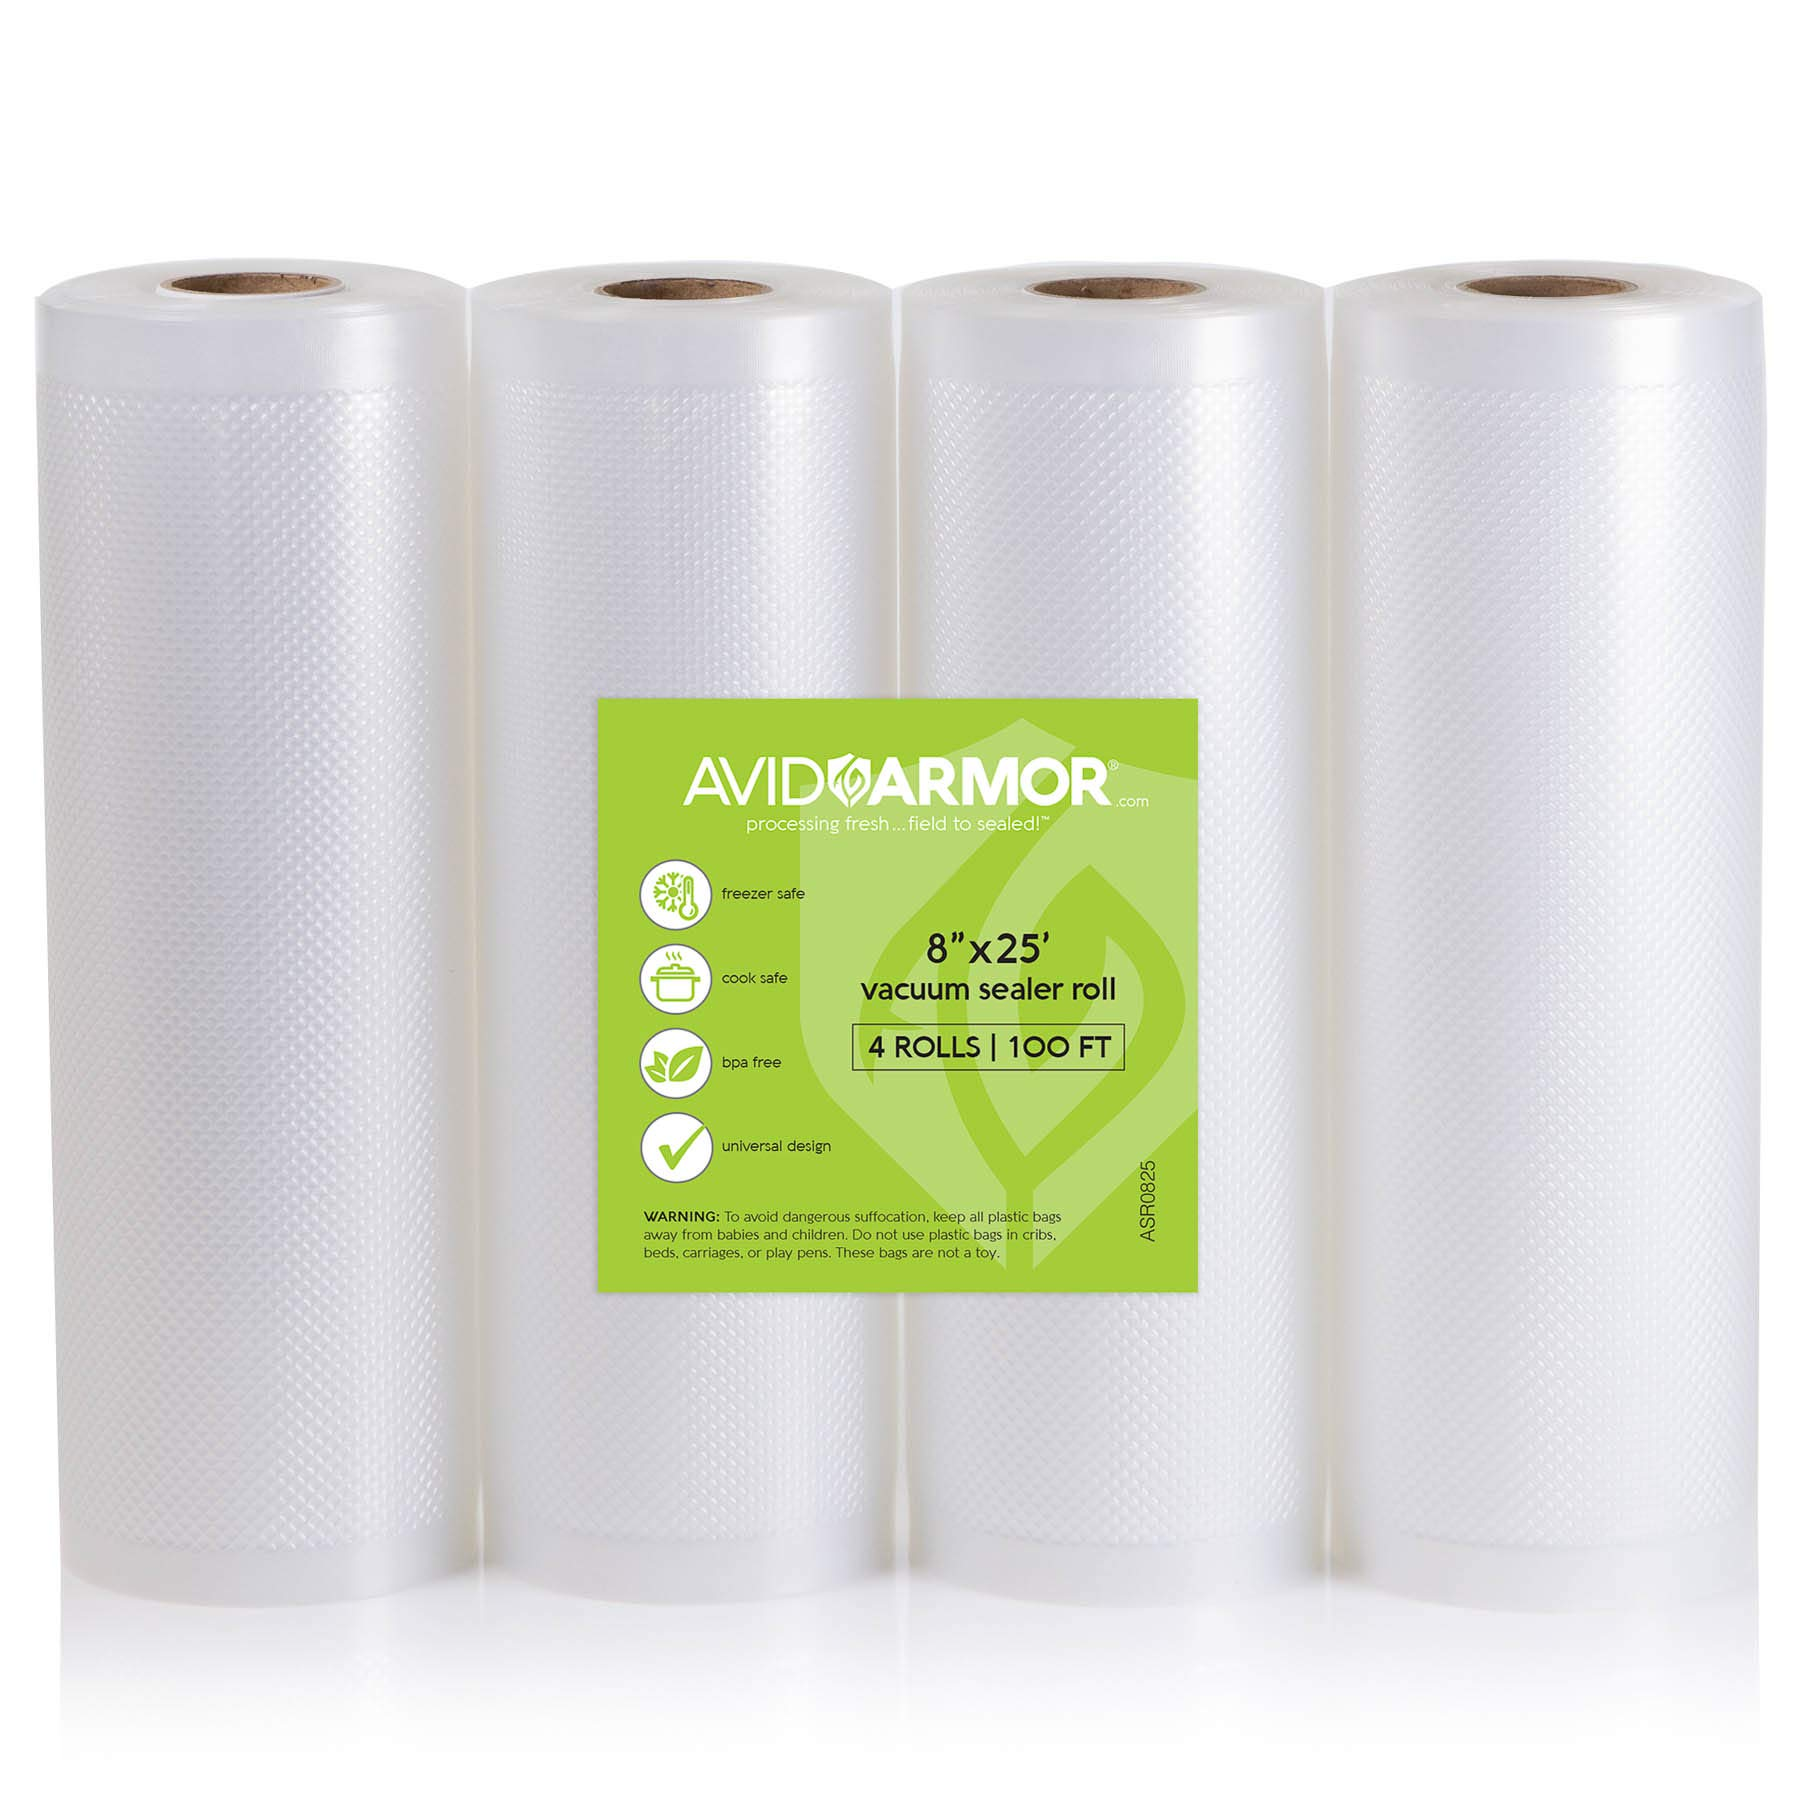 8'' x 25' Vacuum Sealer Bags Rolls 4 Roll Pack for Food Saver, Seal a Meal Vac Sealers, Heavy Duty Commercial, Sous Vide, BPA Free FITS INSIDE ROLL STORAGE Cut Bag to Size 100 Total Feet Avid Armor